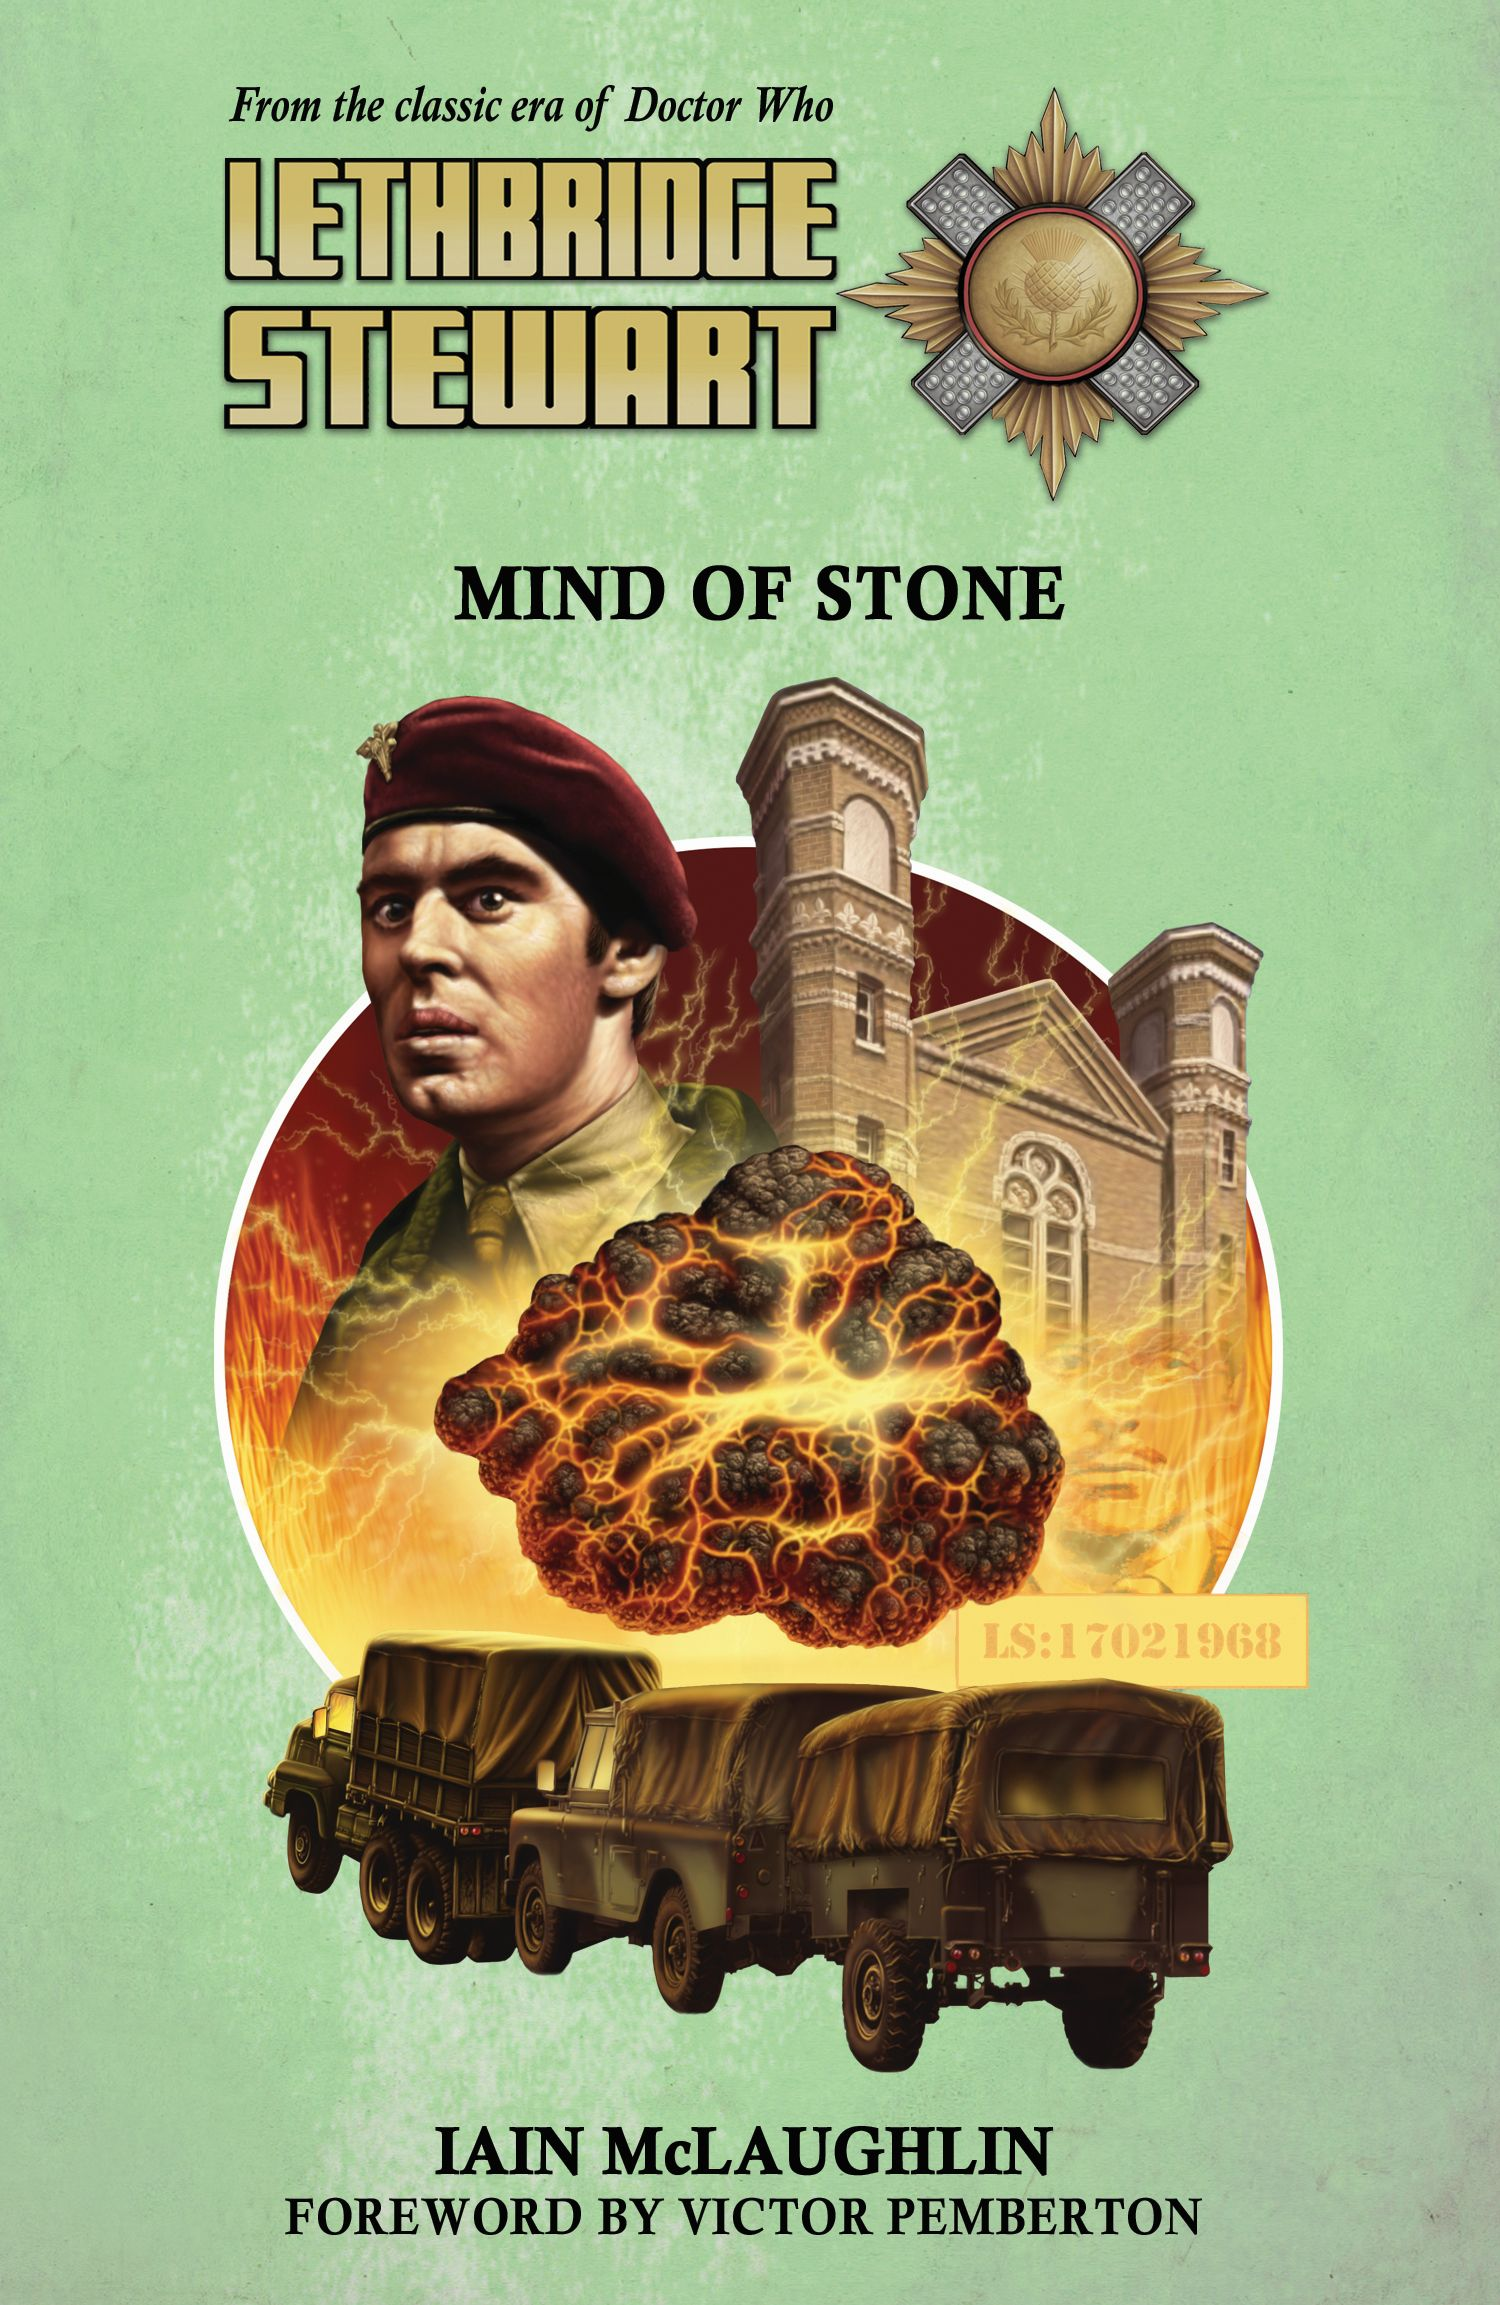 Lethbridge-Stewart: Mind of Stone (Credit: Candy Jar Books)